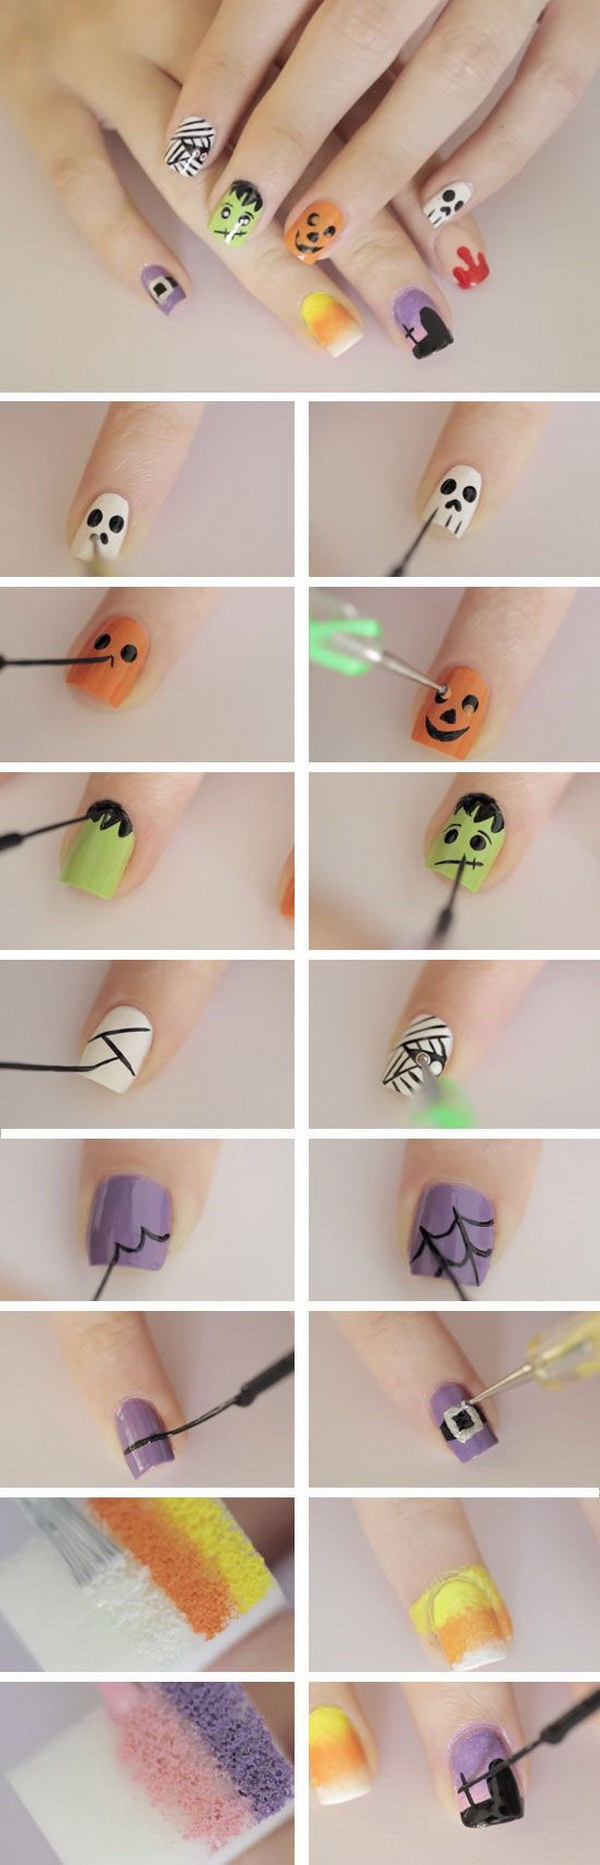 Diy Halloween Nail Art Designs With Step By Step Tutorials For Creative Juice,Current Mens African Shirts Designs 2019